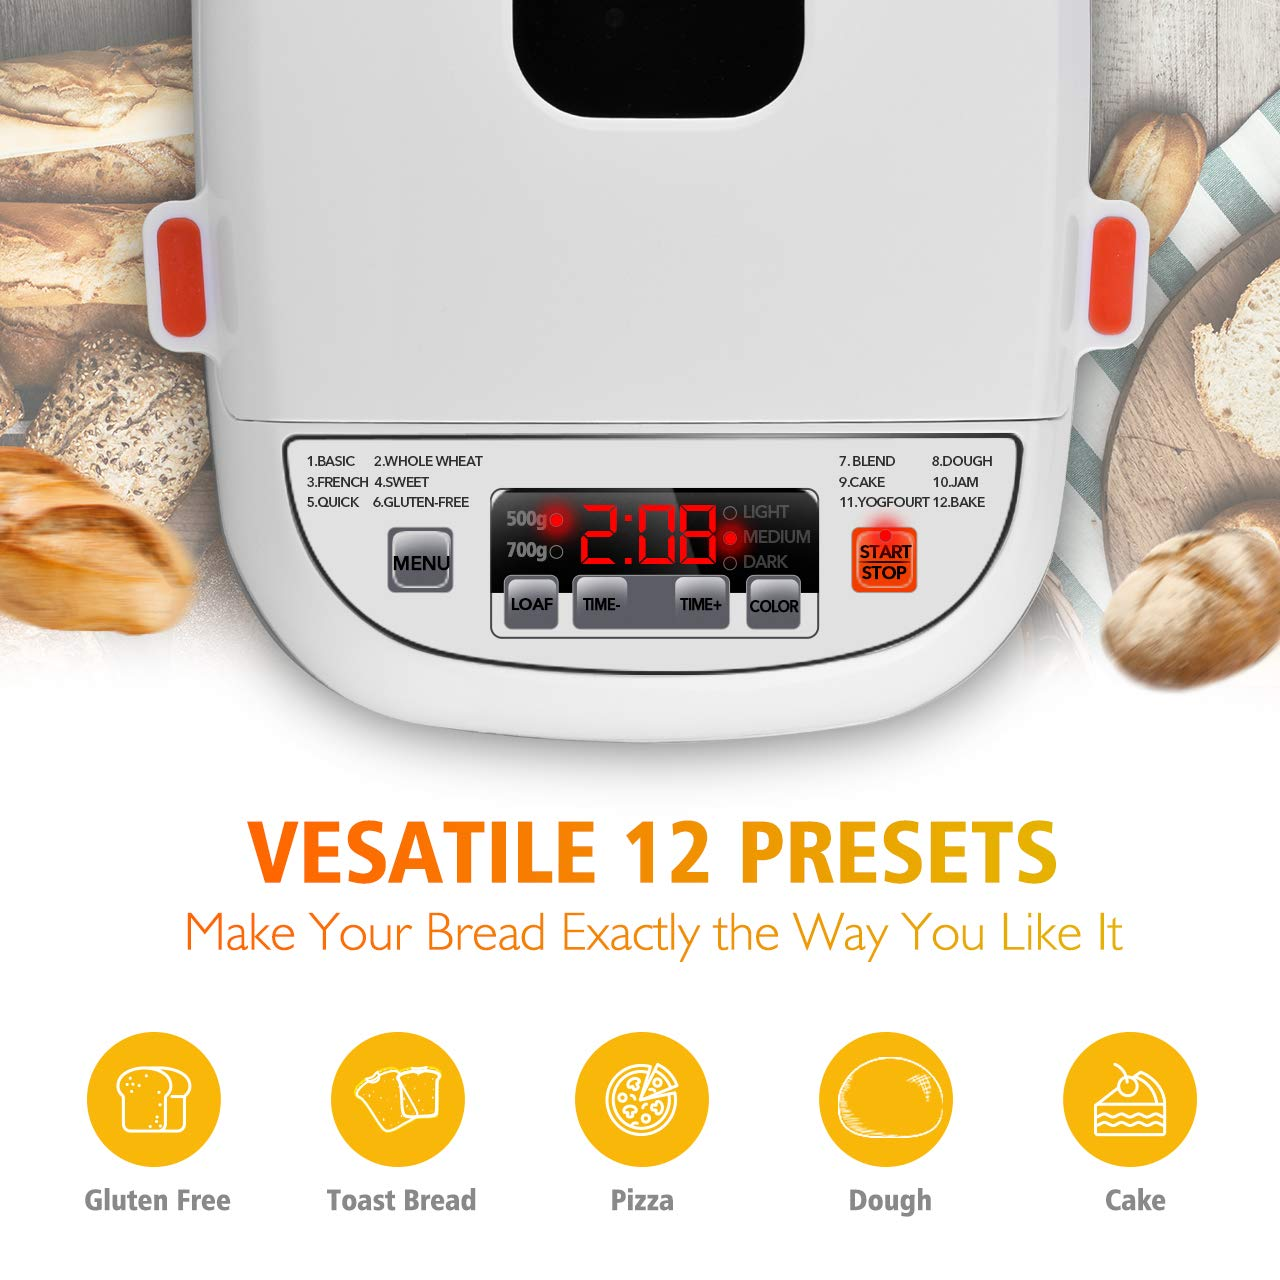 VIVREAL Bread Maker, Automatic Breadmaker Machine 1.5LB, Home Bakery Pro 12 Menus with Gluten Free, 3 Crust Colors 2 Loaf Sizes, 15h Delay Time 1h Keep Warm, Superior Safety ETL Listed Stainless Steel by VIVREAL (Image #3)